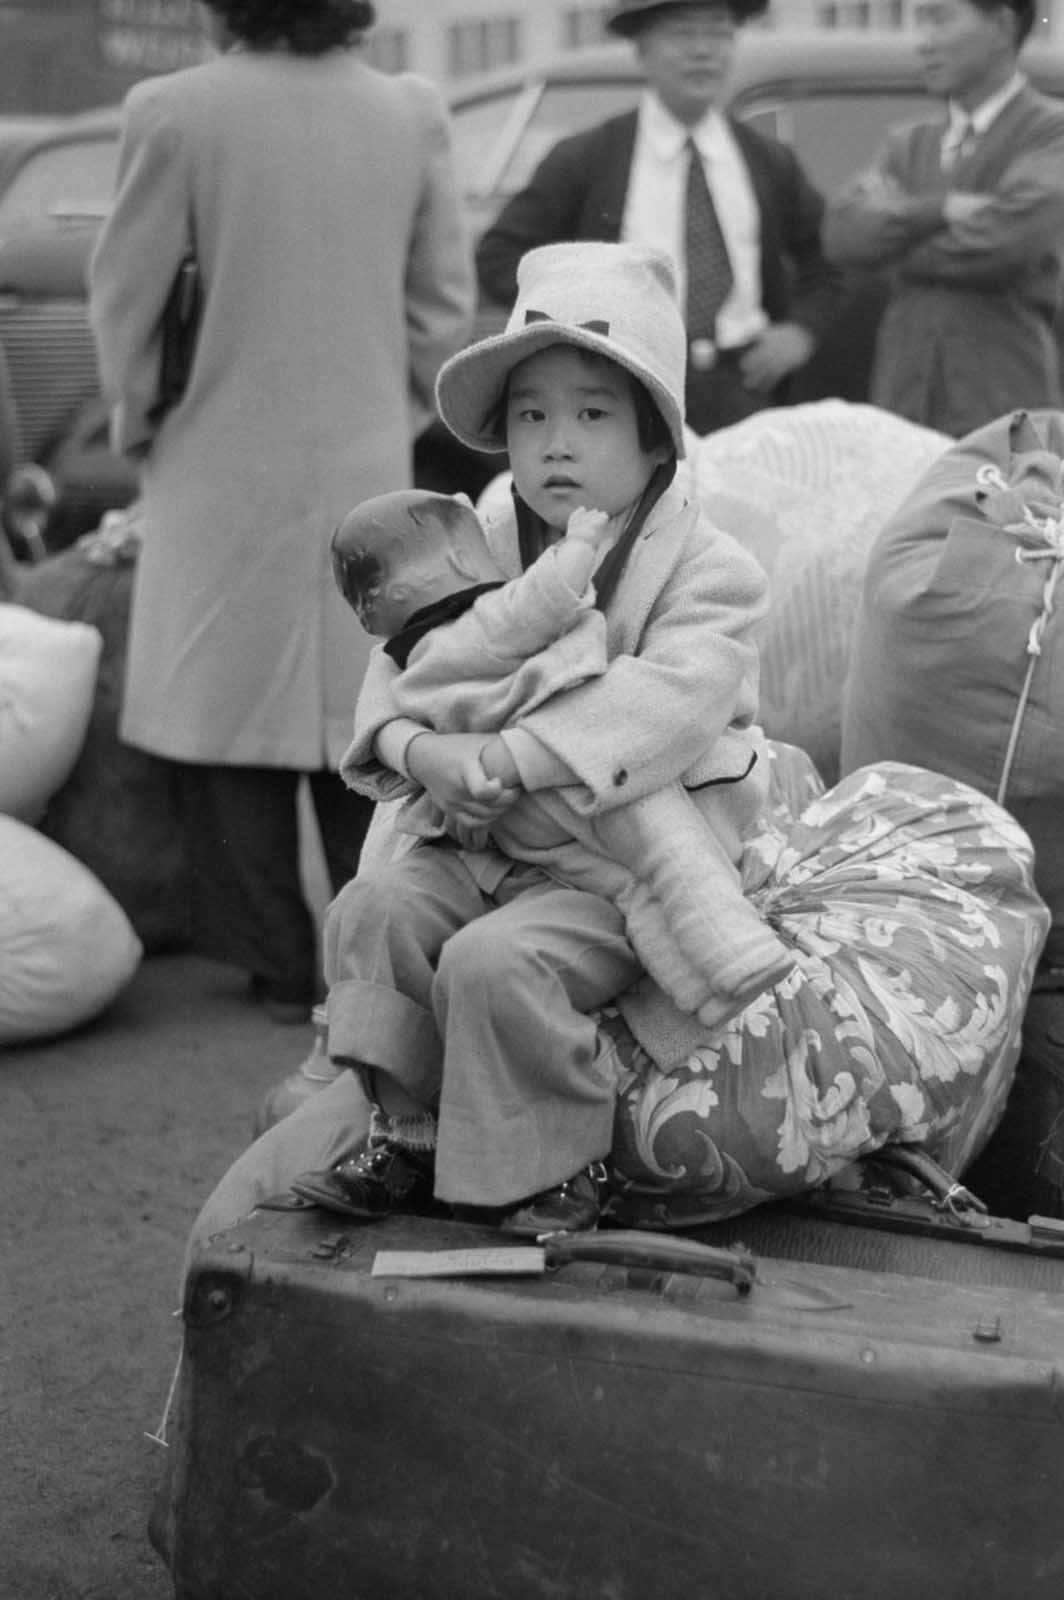 An Japanese girl with her doll.